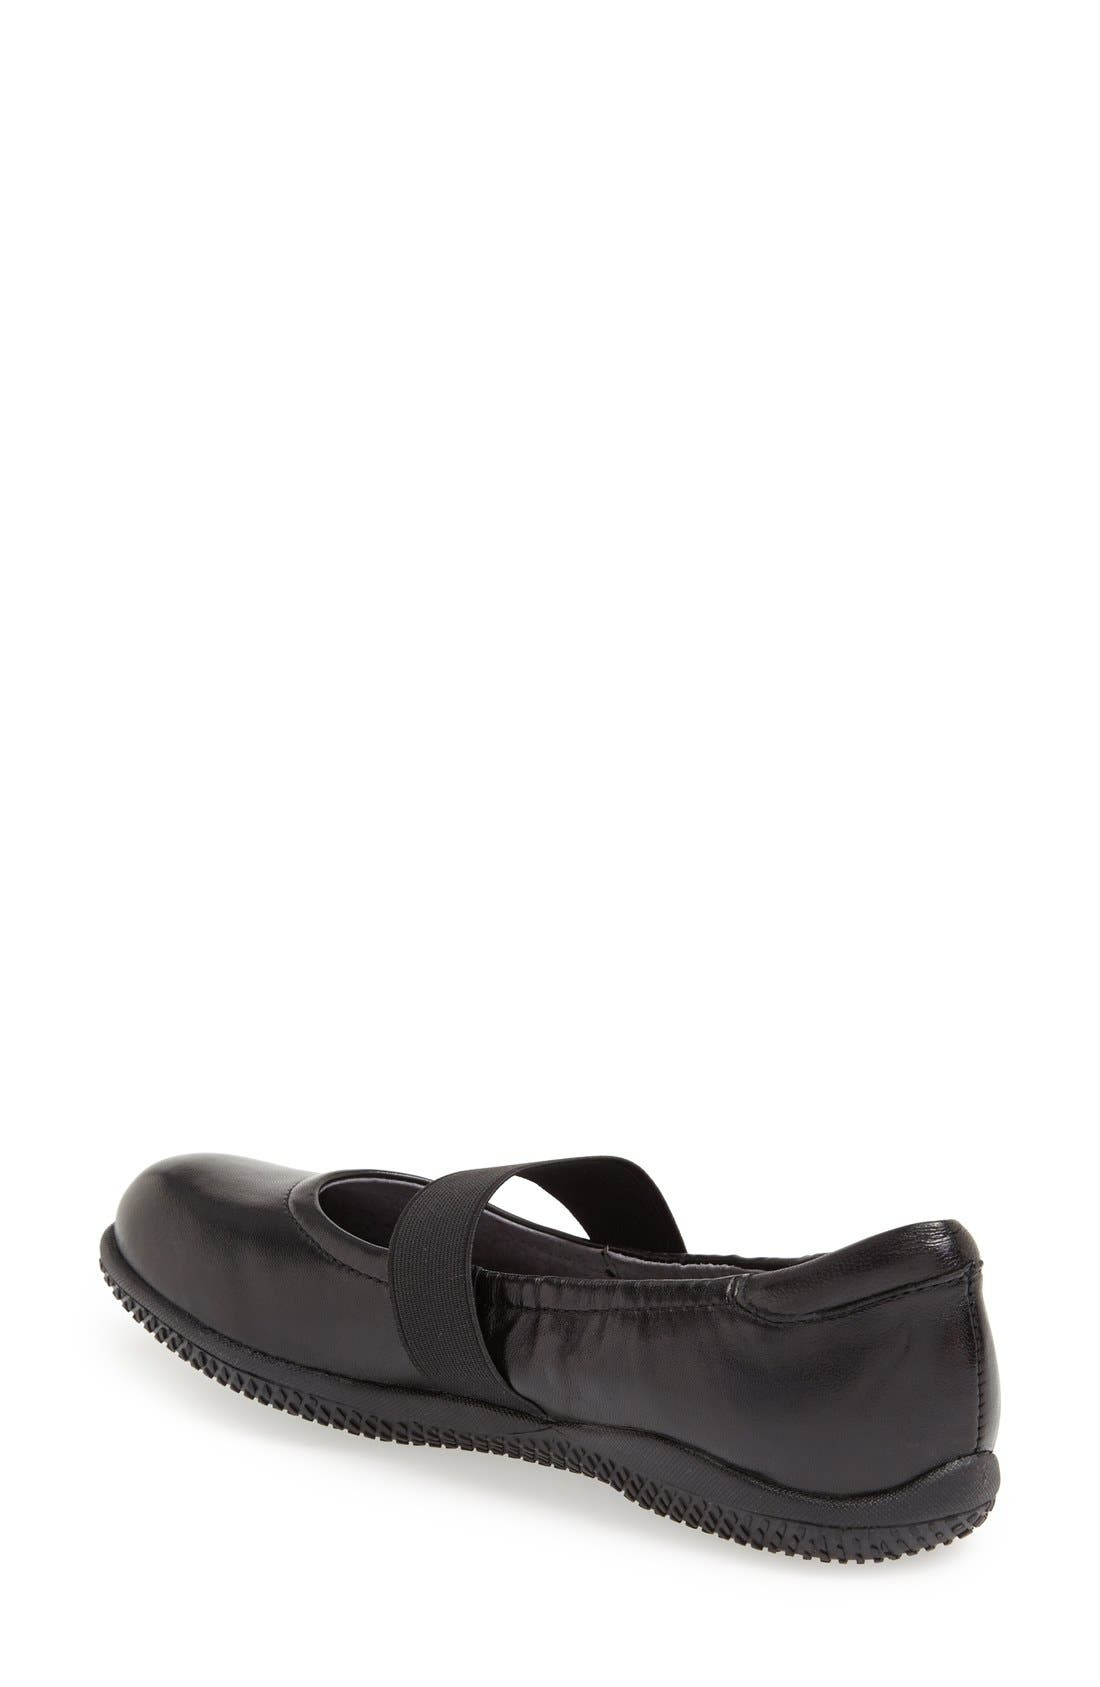 Alternate Image 2  - SoftWalk® 'High Point' Mary Jane Flat (Women)